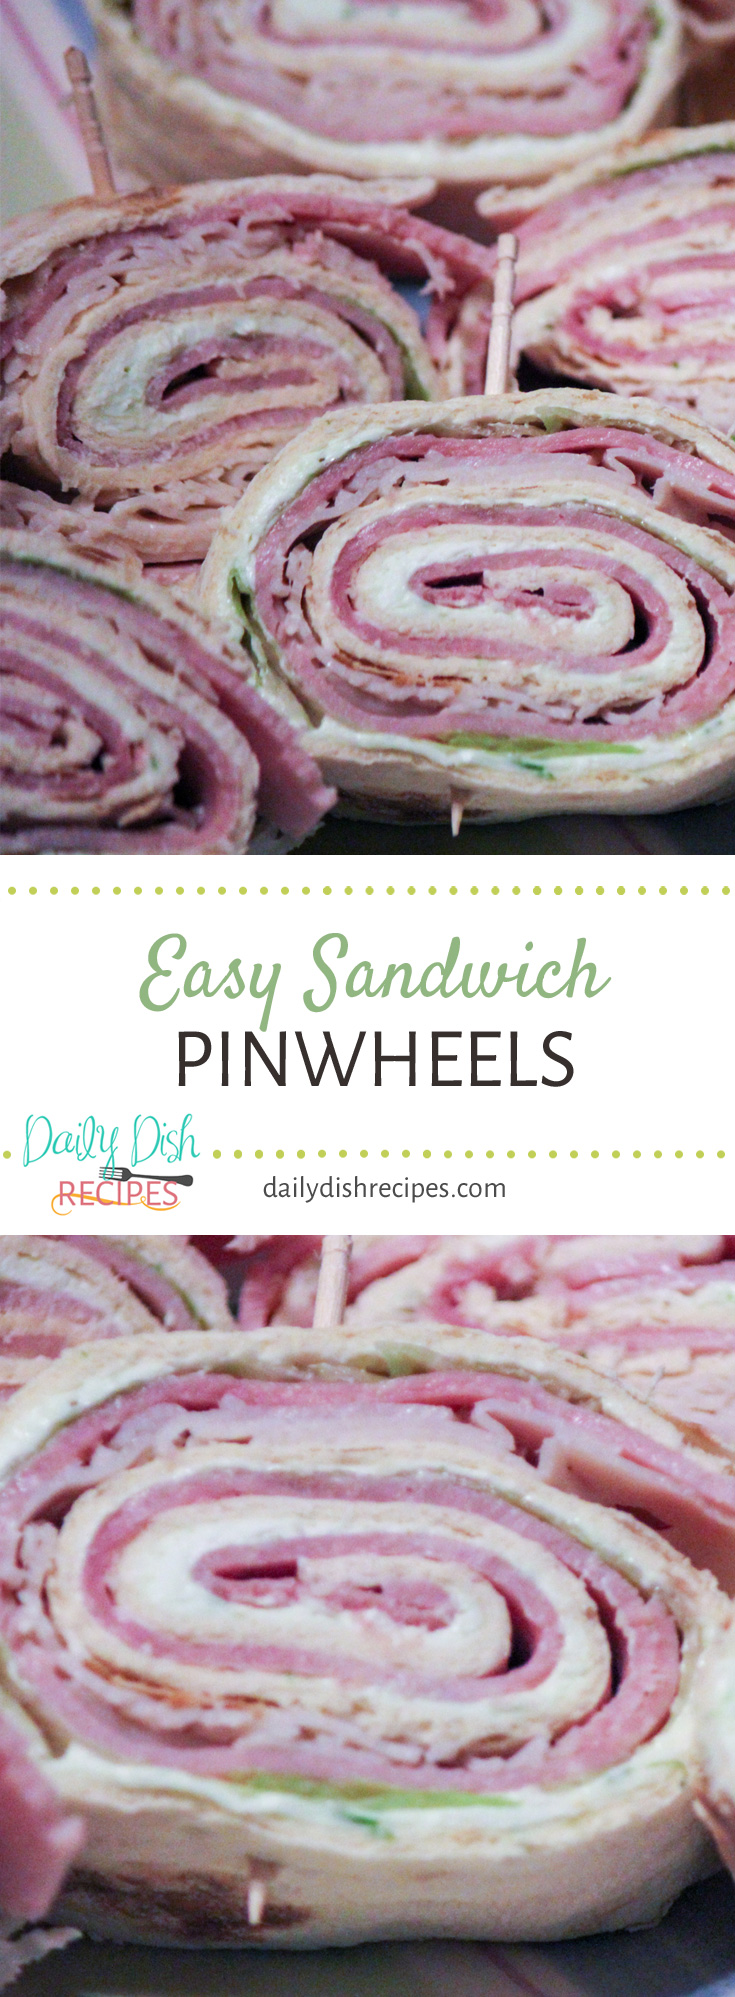 Want to know how to make Easy Sandwich Pinwheels? This recipe makes it easy, put everything together, roll and slice! Such a great appetizer!